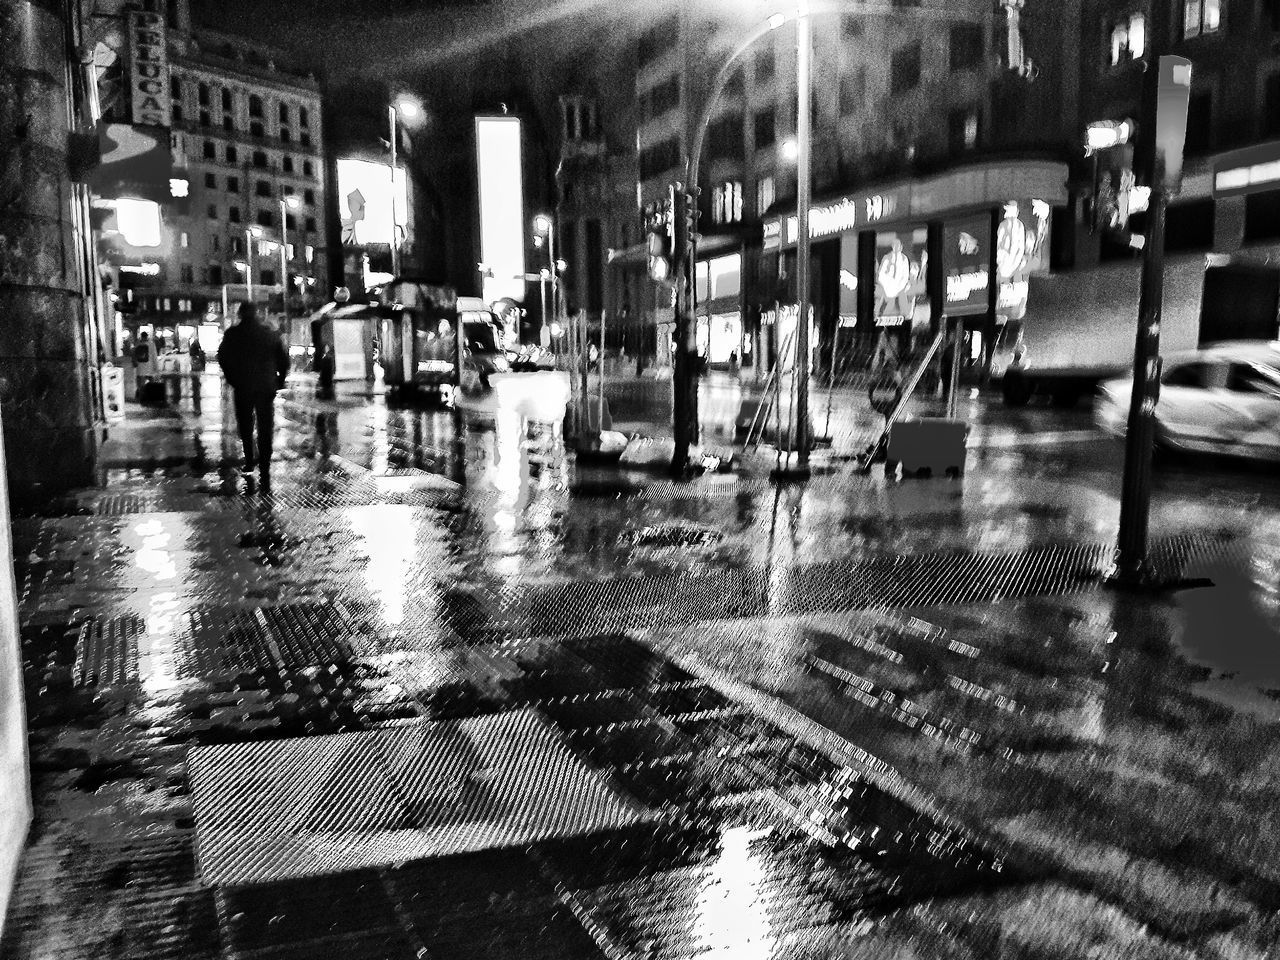 city, illuminated, architecture, street, night, wet, building exterior, transportation, city life, rain, group of people, built structure, motion, reflection, walking, incidental people, real people, mode of transportation, land vehicle, rainy season, city street, outdoors